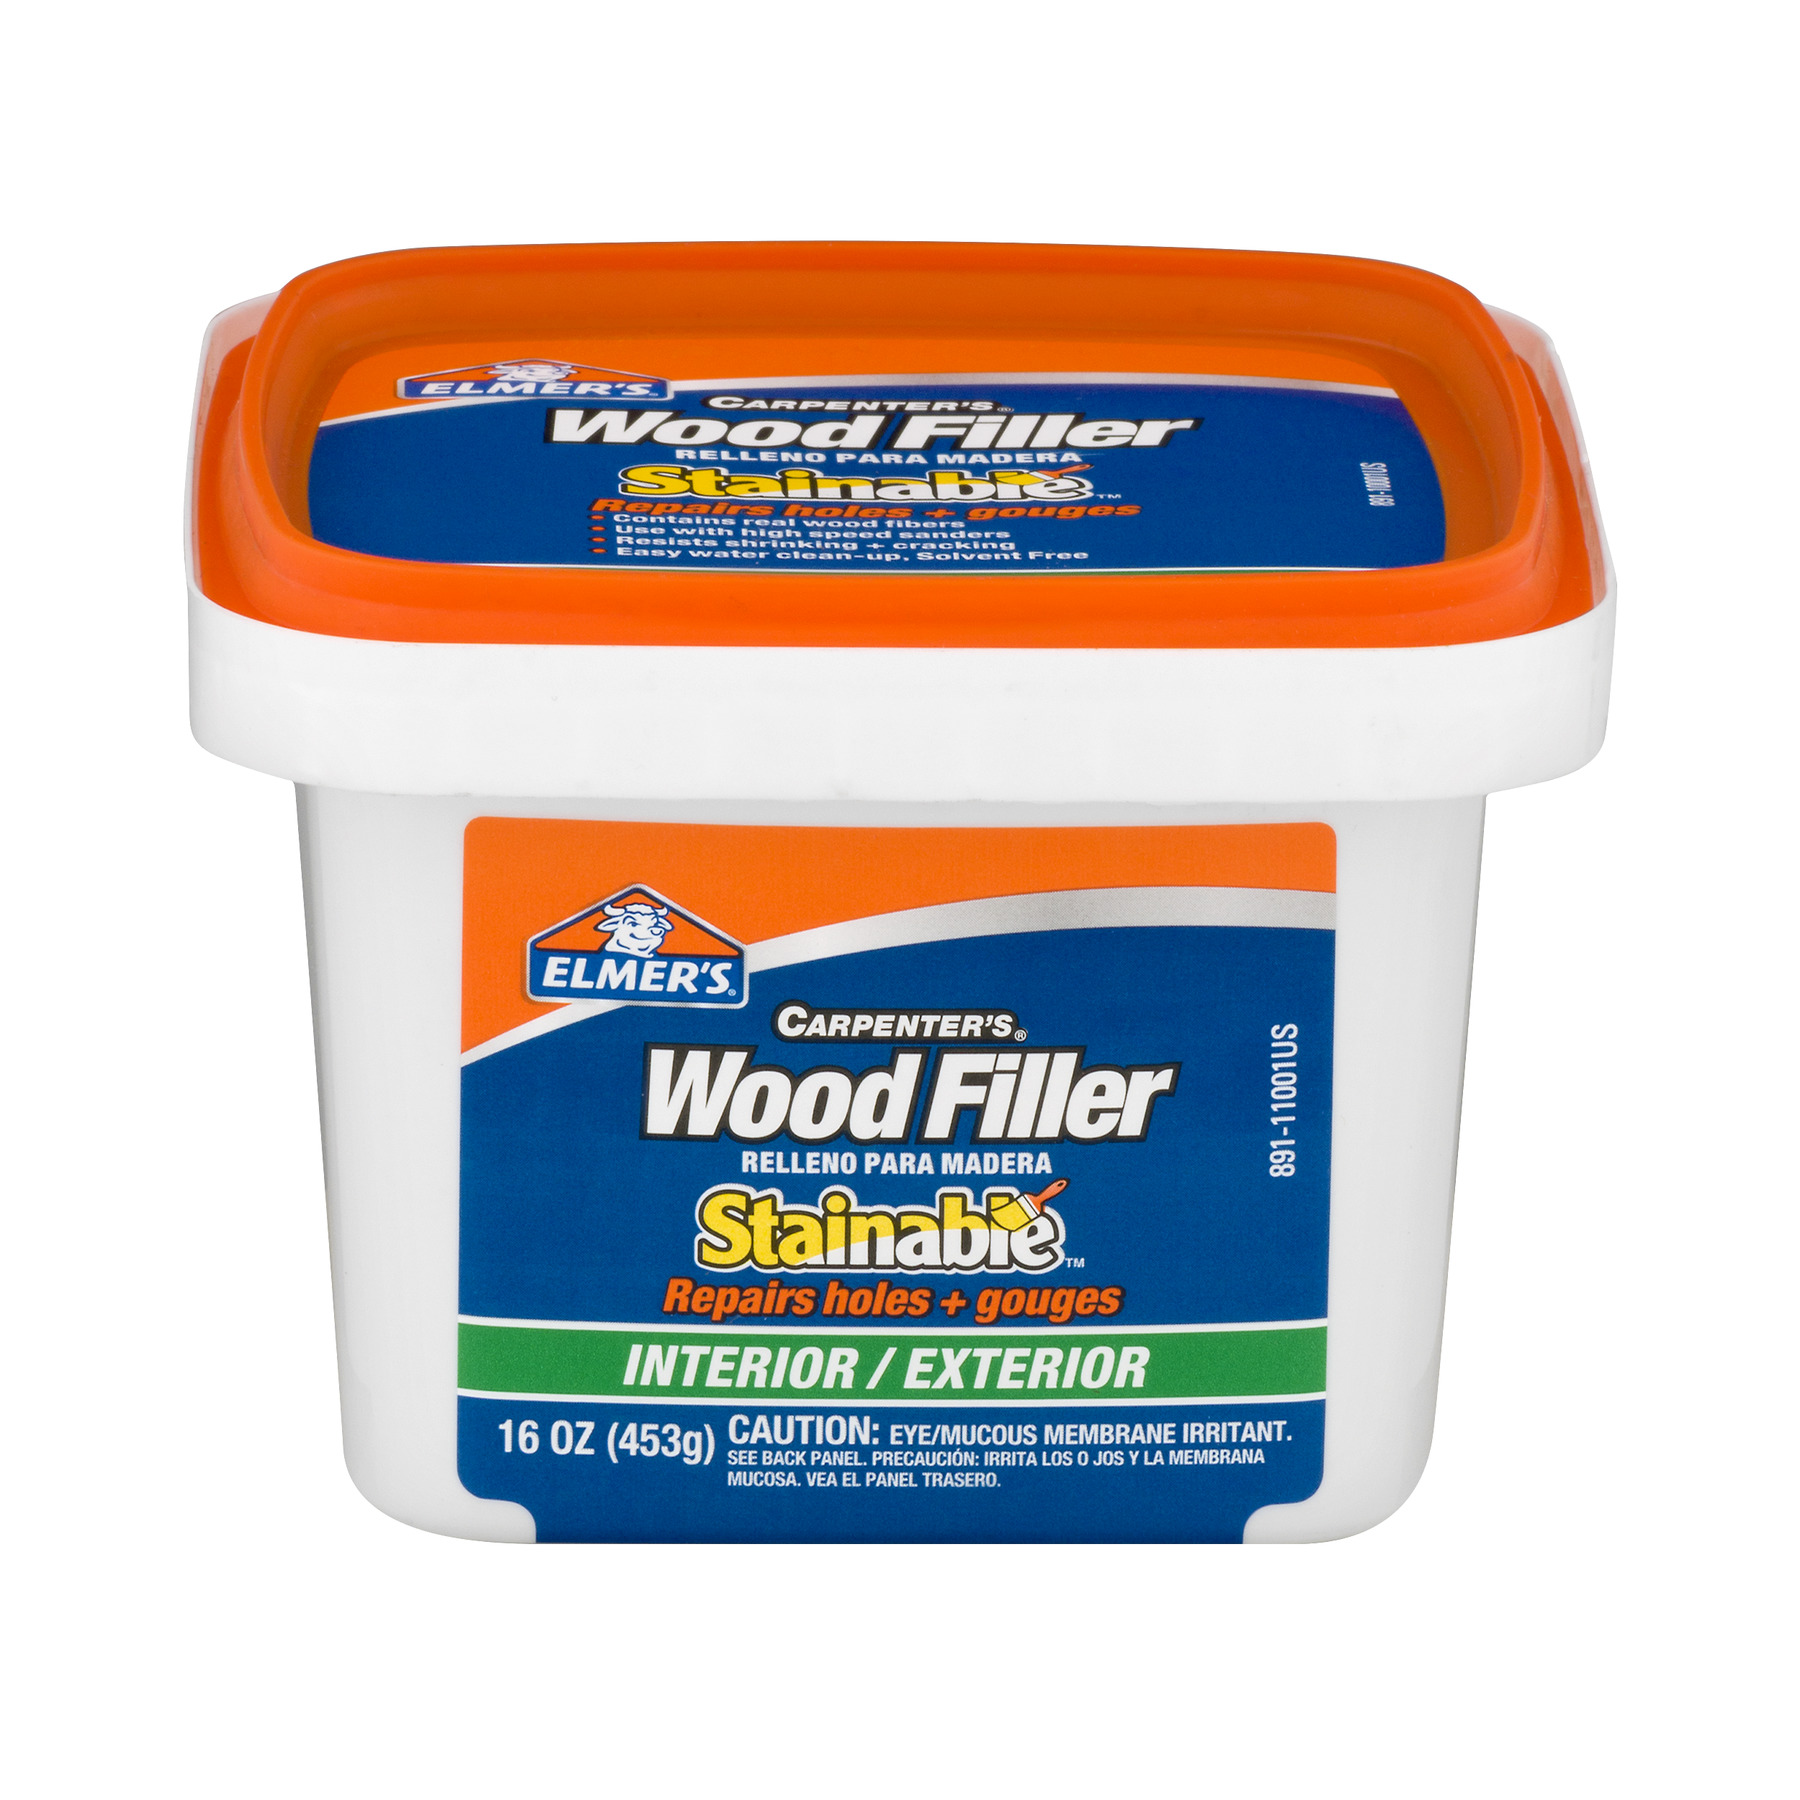 Elmer's Carpenter's Wood Filler Stainable Interior/Exterior, 16.0 OZ